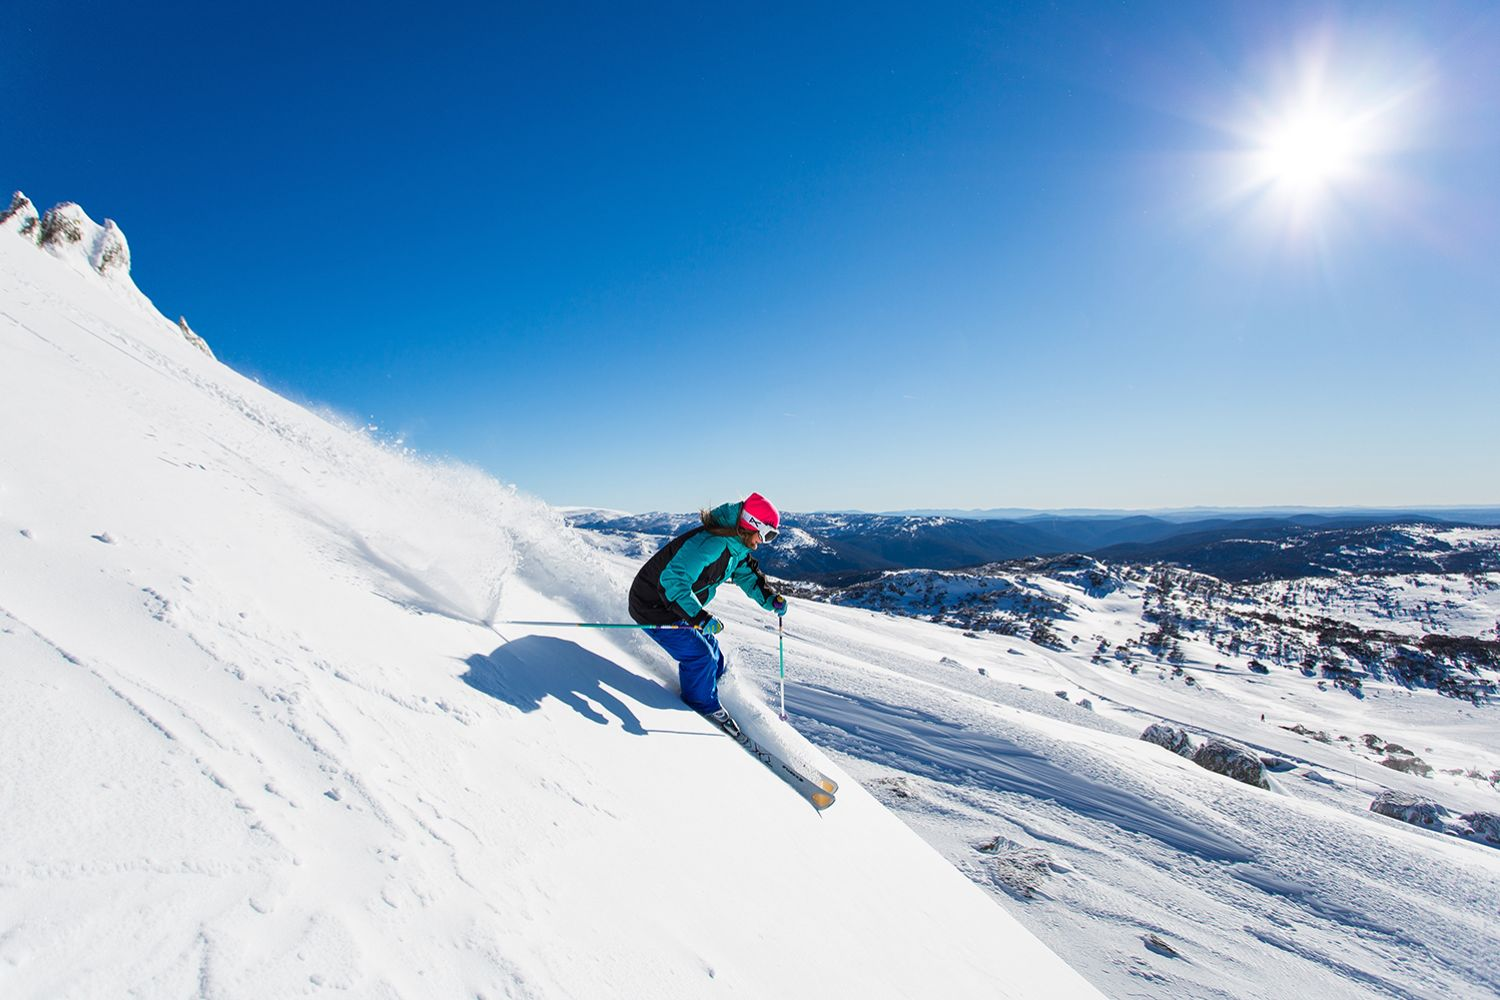 Skiing in Perisher, Kosciuszko National Park